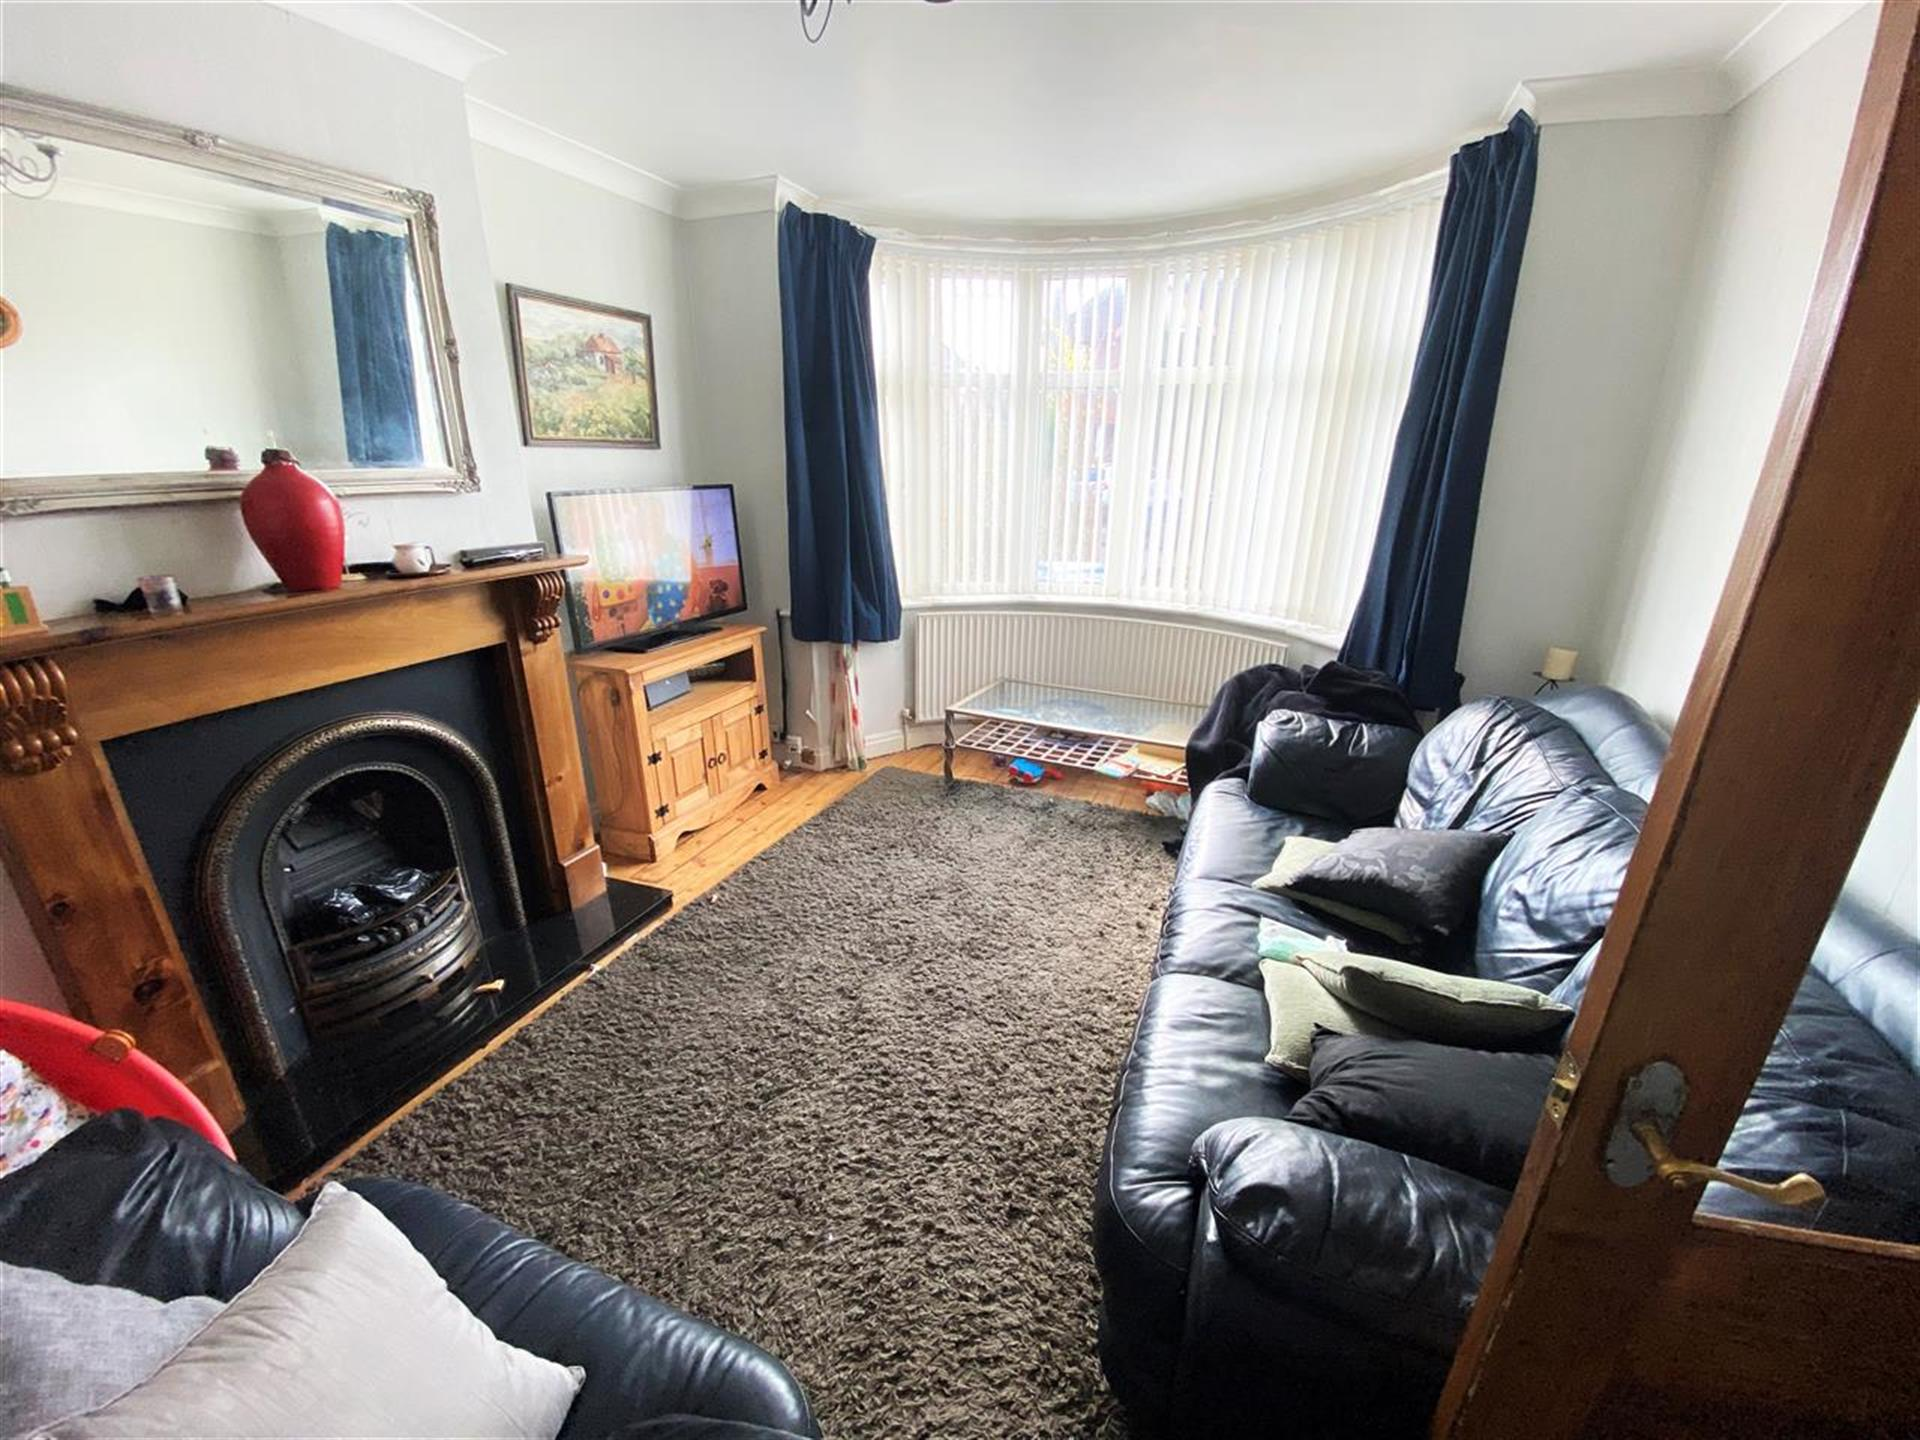 4 Bedroom Semi-detached House For Sale - Reception Room One